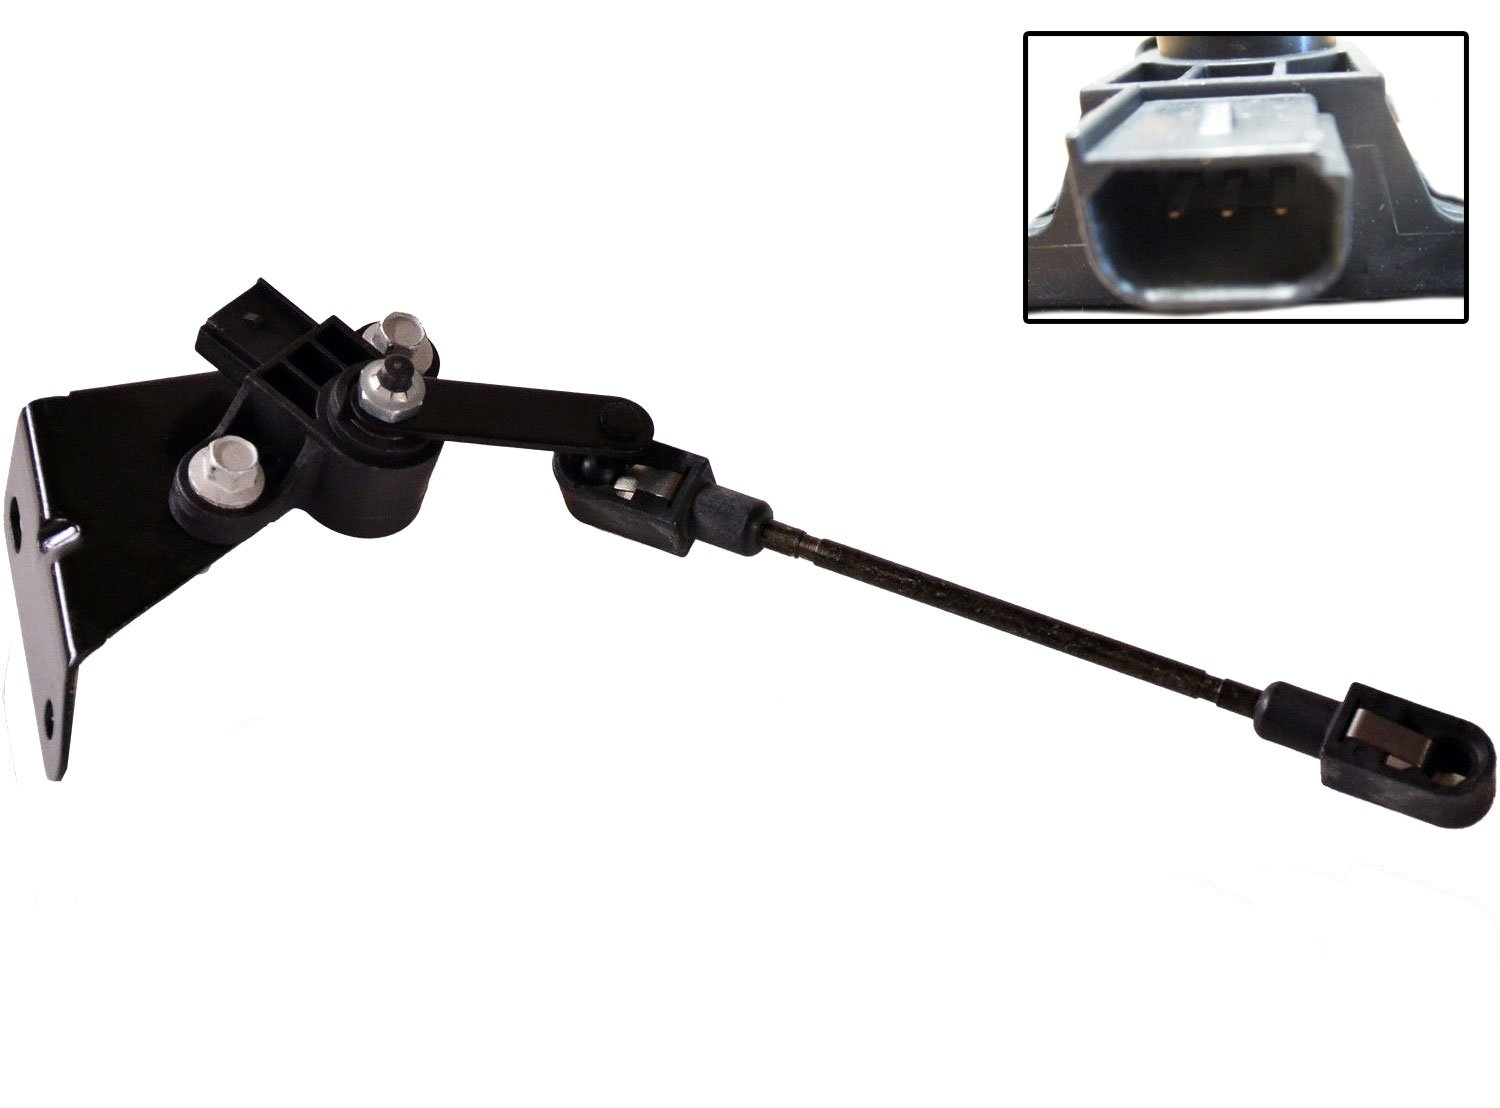 Suspension Auto Ride Leveling Height Sensor w/ Bracket Rear for 03-11 Ford Crown Victoria Lincoln Town Car Mercury Grand Marquis Replaces 8W1Z-5359-A 3W1Z-5359-AA by Auto Parts Prodigy